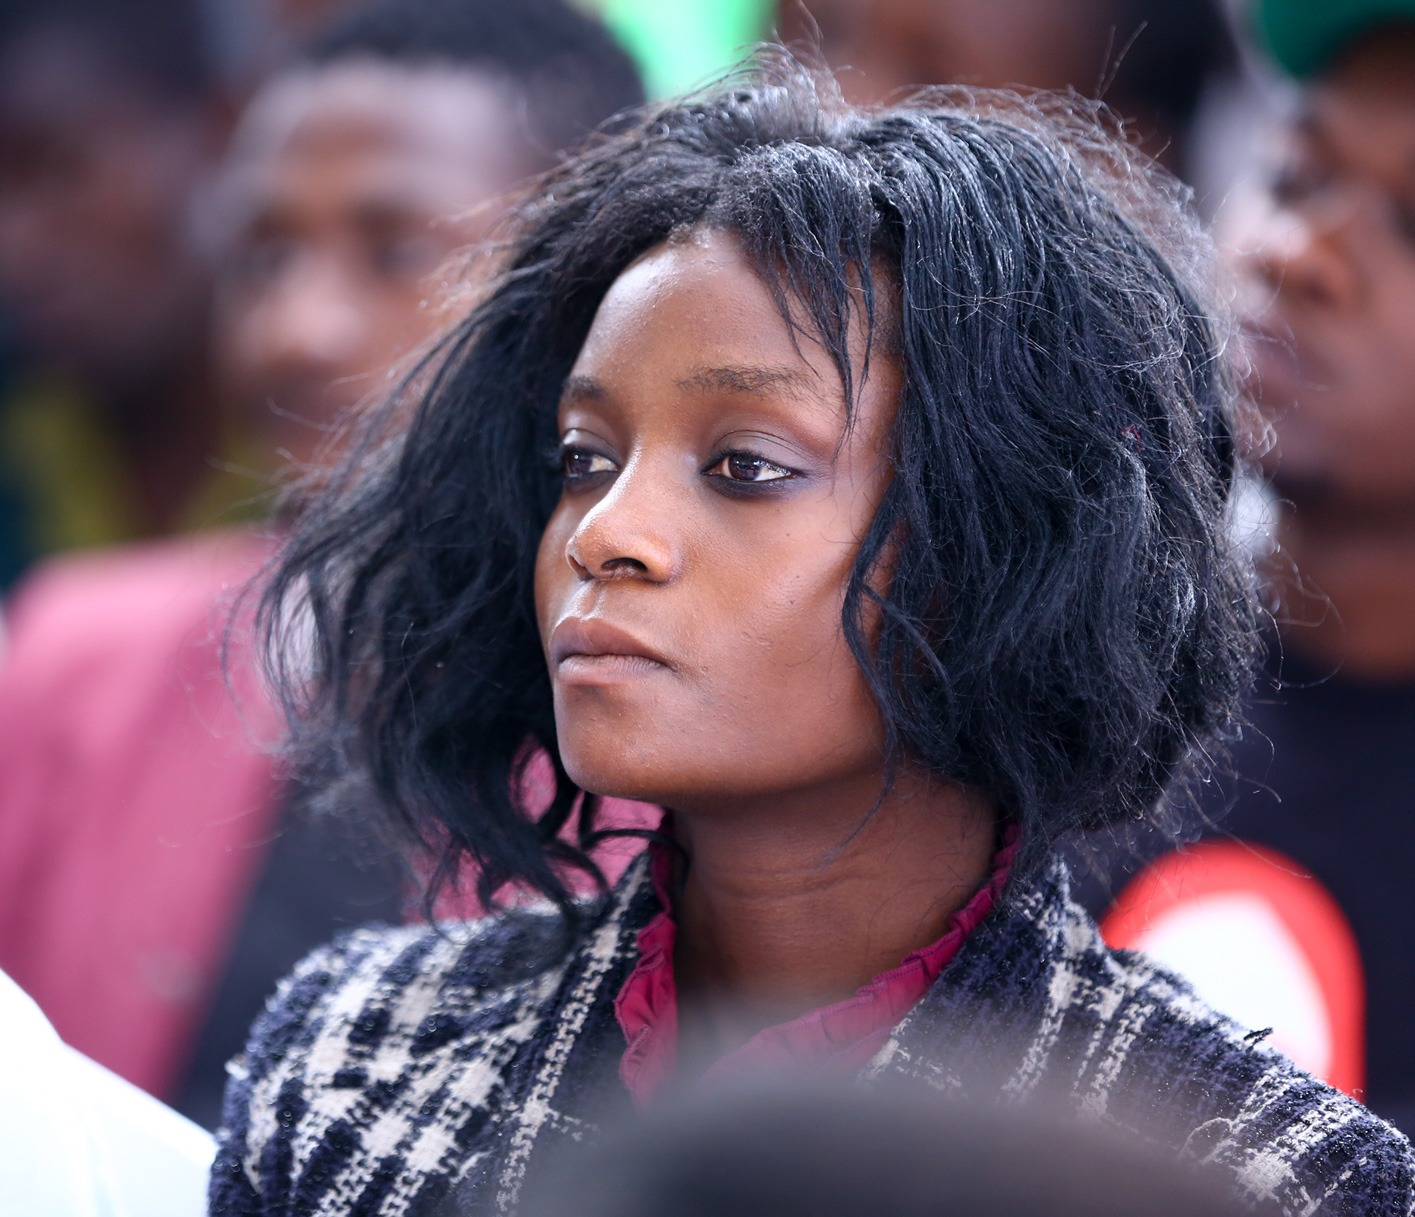 Yvonne Agnes, a beneficiary of Generation Kenya, listens in during the launch of Safaricom Foundation's Wezesha programme. The three-year economic empowerment programme aims to provide training and entry level job placement to 1,700 young people.